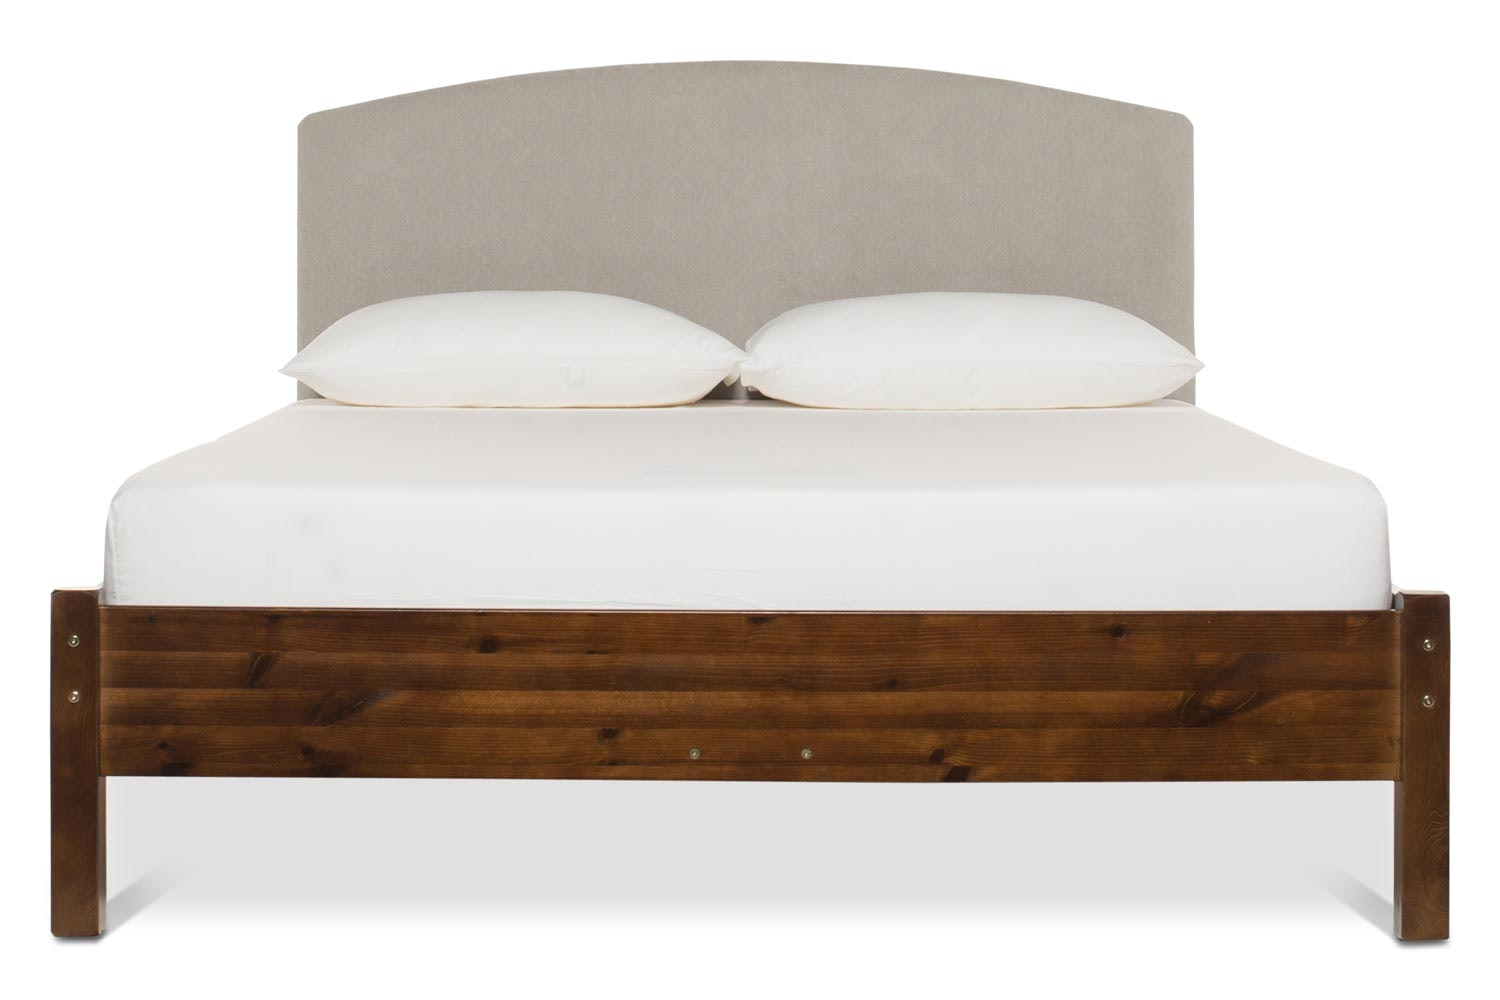 Emily Loft Walnut Bed Frame | 4FT6 | Lennon Headboard Silver